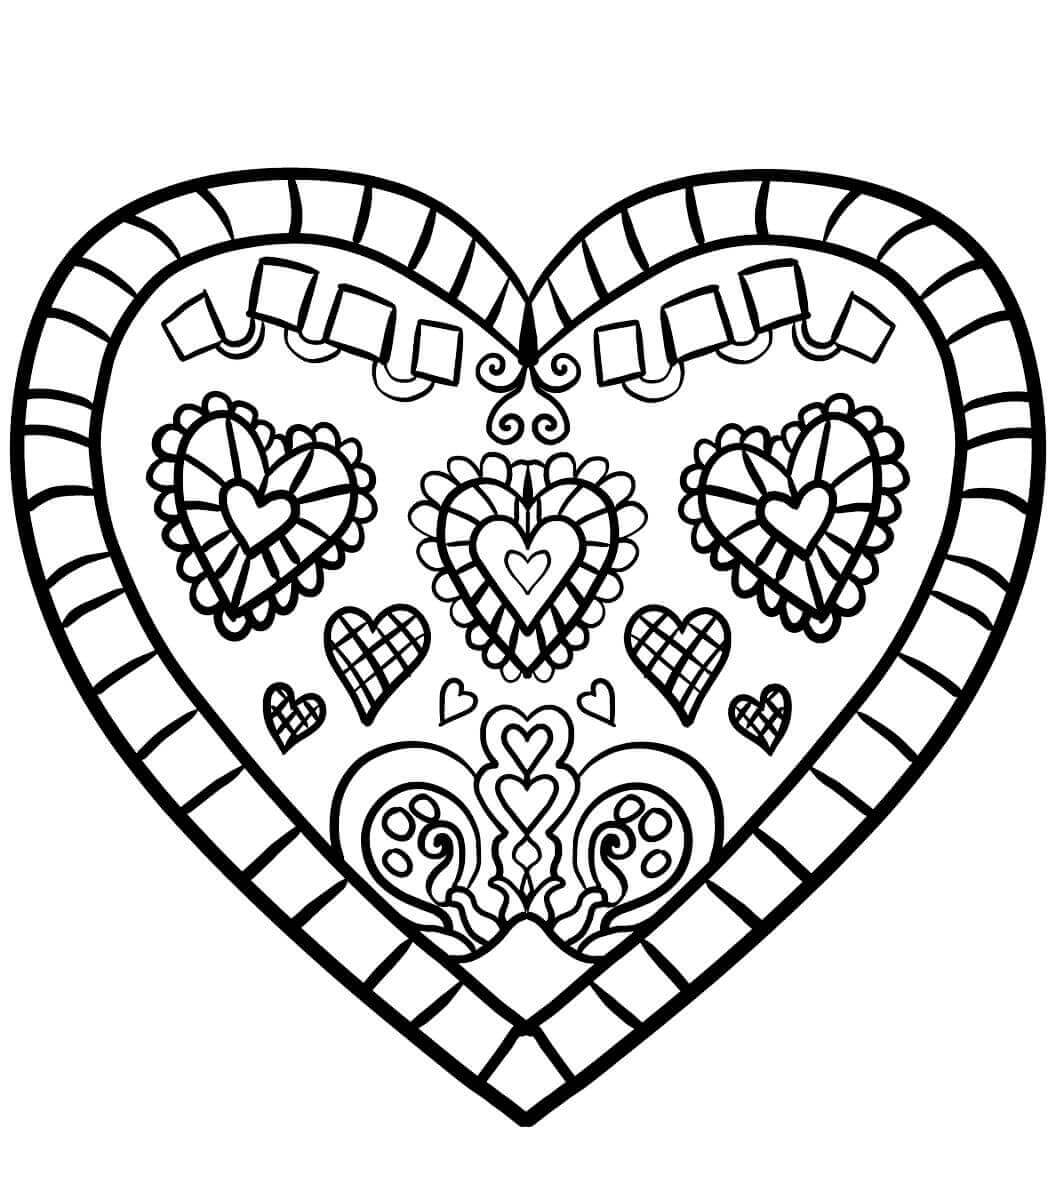 hearts coloring page hearts valentine39s day coloring child coloring hearts page coloring